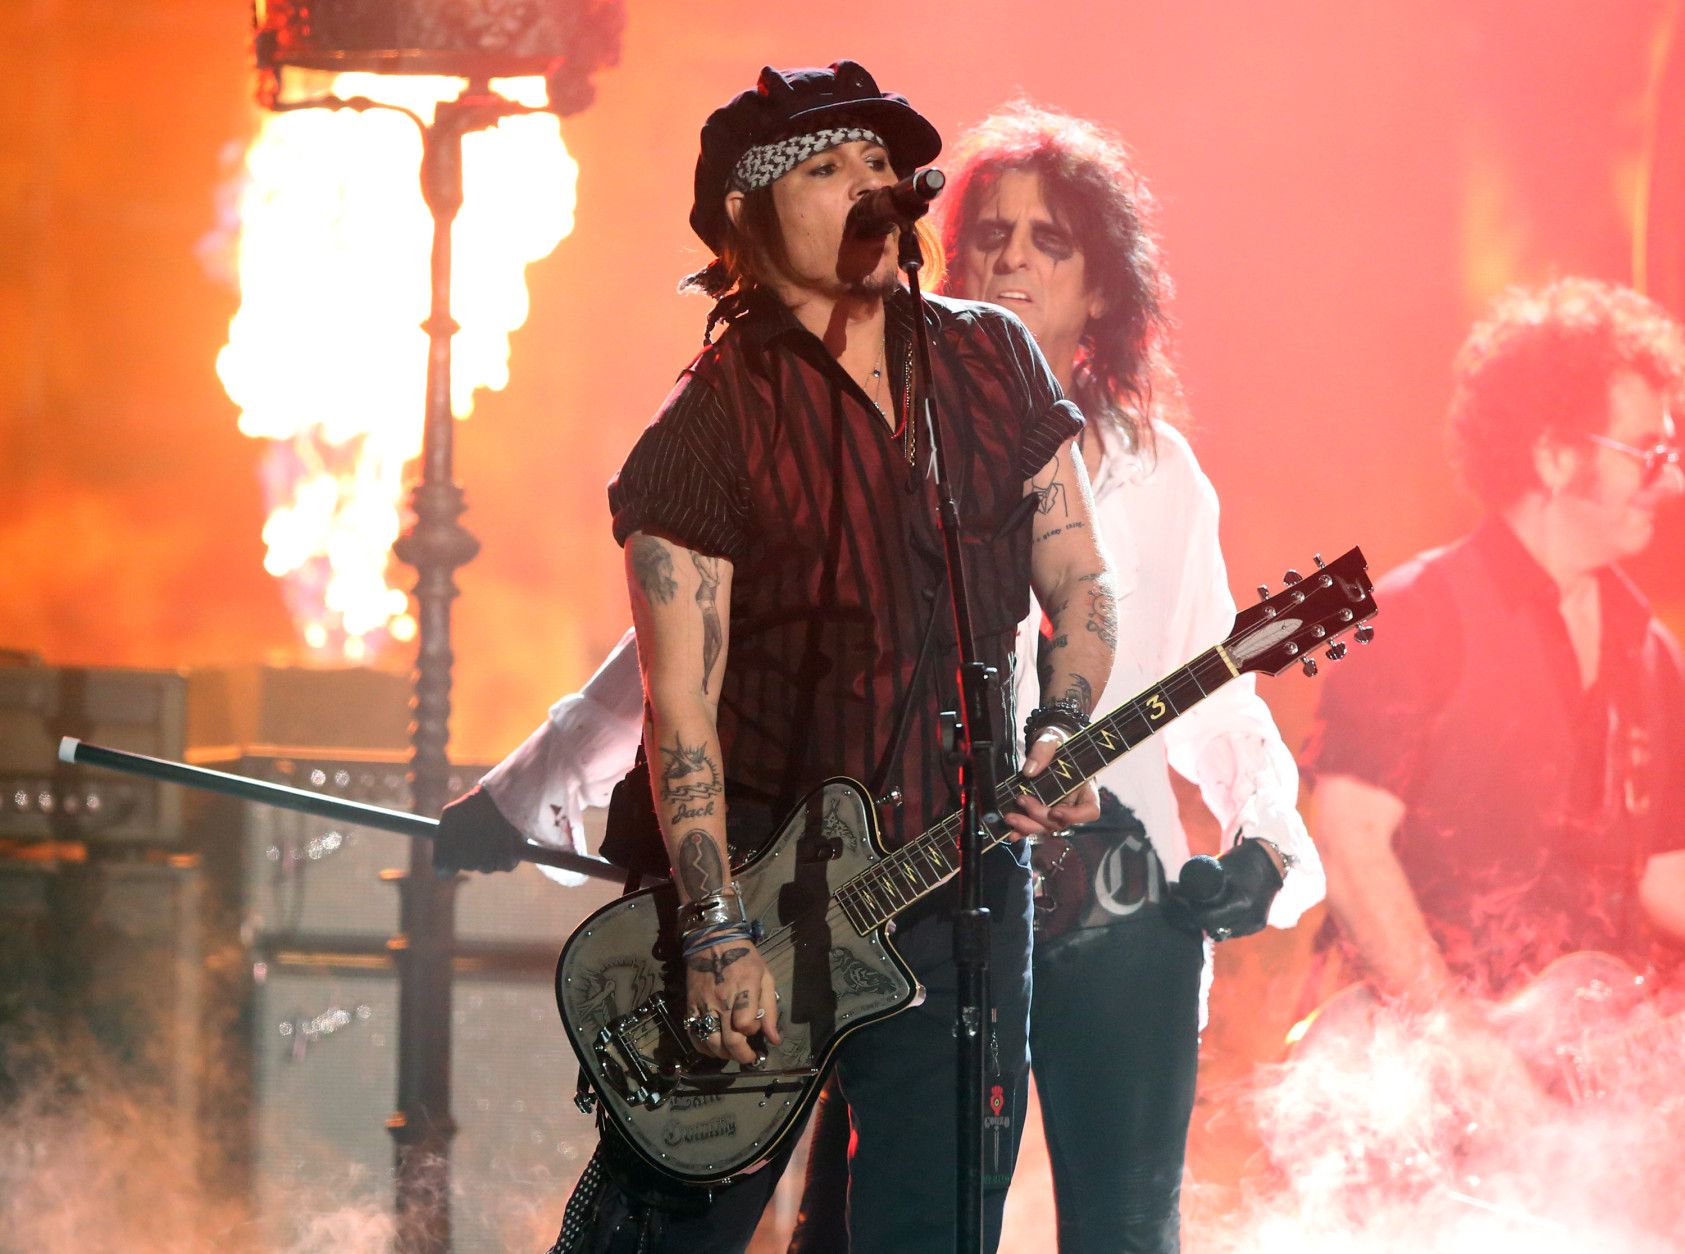 Johnny Depp of Hollywood Vampires performs at the 58th annual Grammy Awards on Monday, Feb. 15, 2016, in Los Angeles. (Photo by Matt Sayles/Invision/AP)